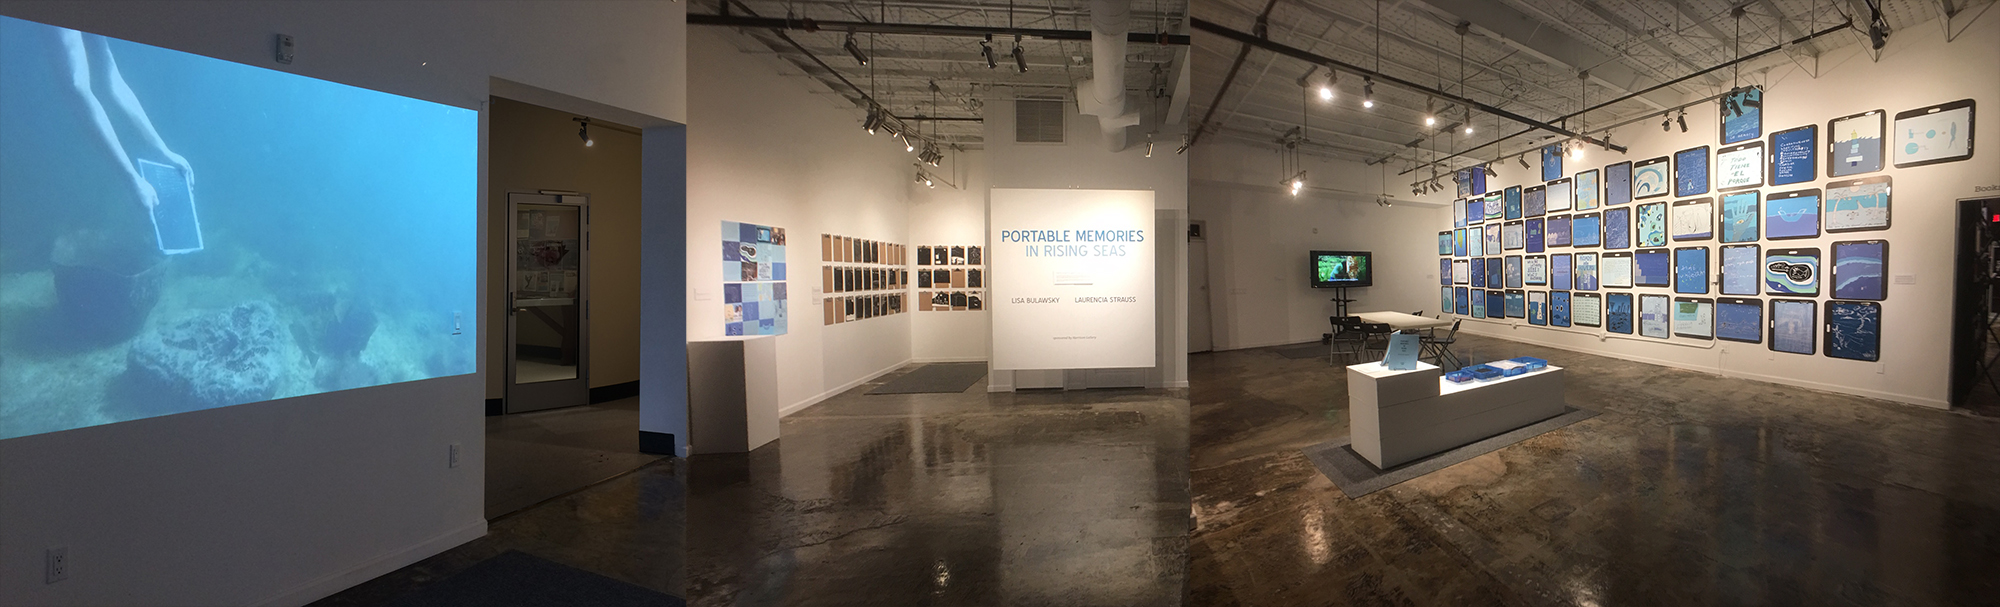 https://lisabulawsky.com/wp-content/uploads/2020/02/07_Fifty-Fifty-art-collective_Portable-Memories-in-Rising-Seas_exhibition.jpg